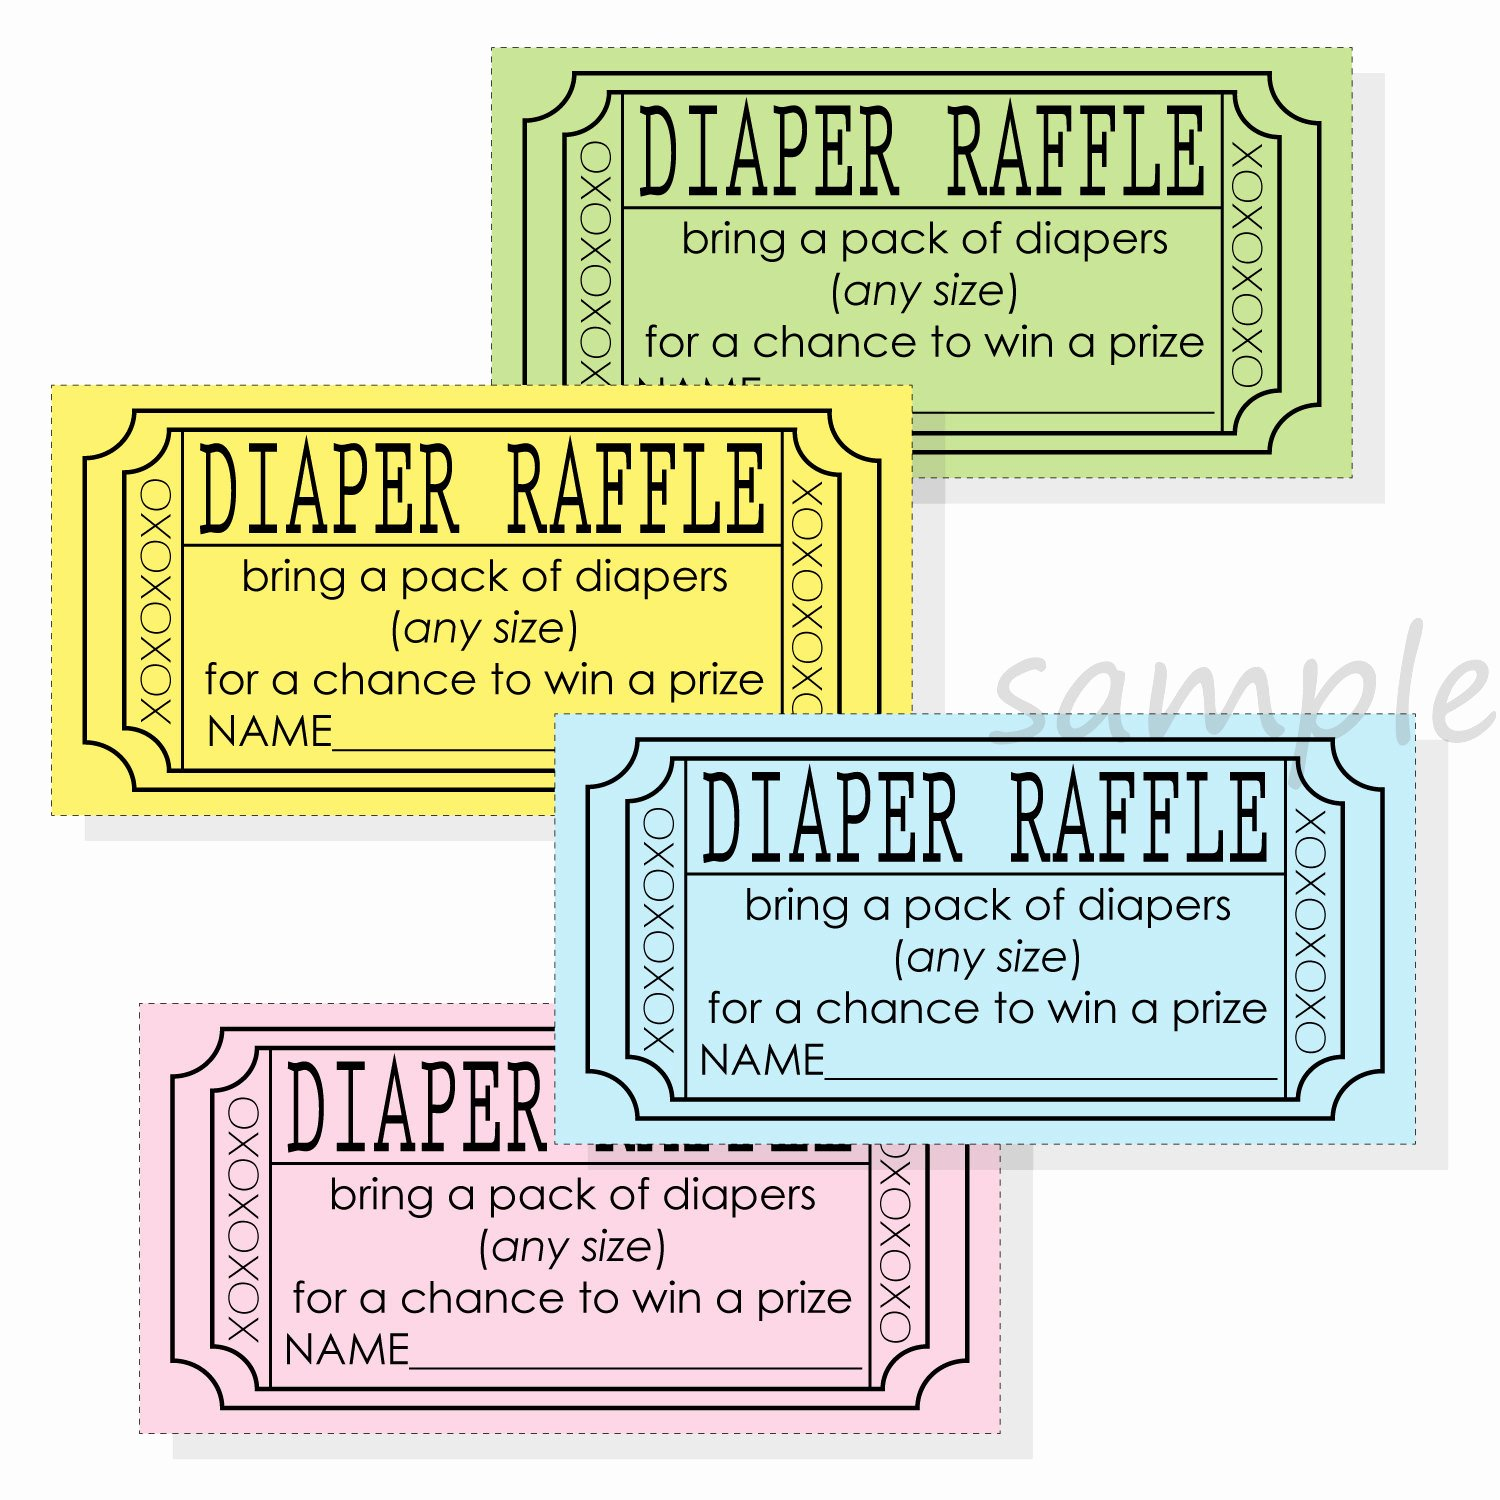 Free Printable Raffle Tickets with Stubs Best Of Diy Diaper Raffle Ticket Stub for A Boy Girl or Gender